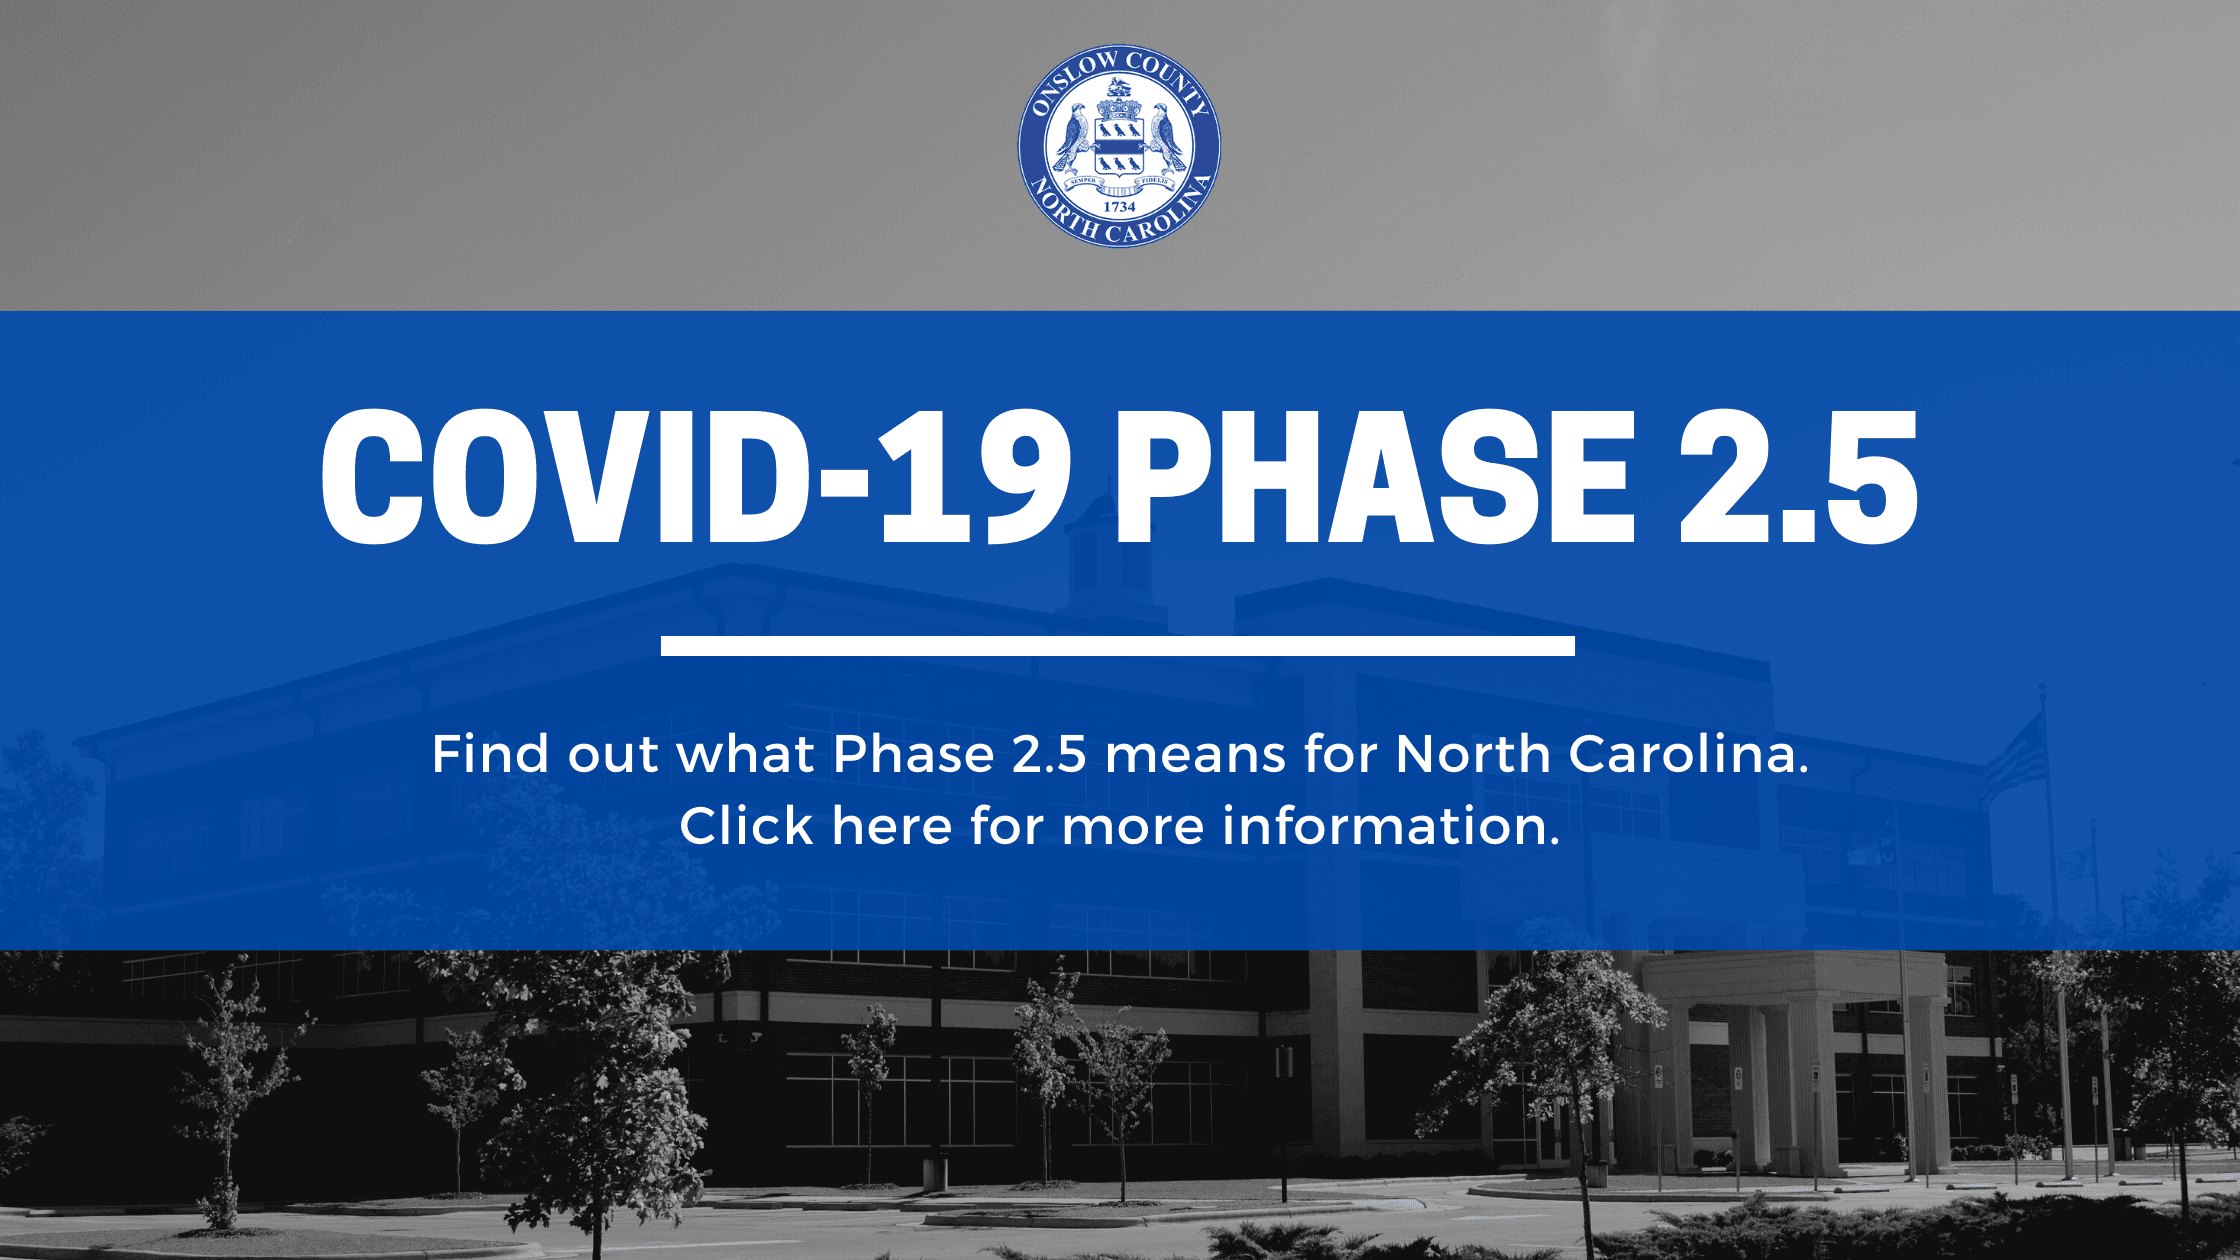 covid-19 phase 2.5